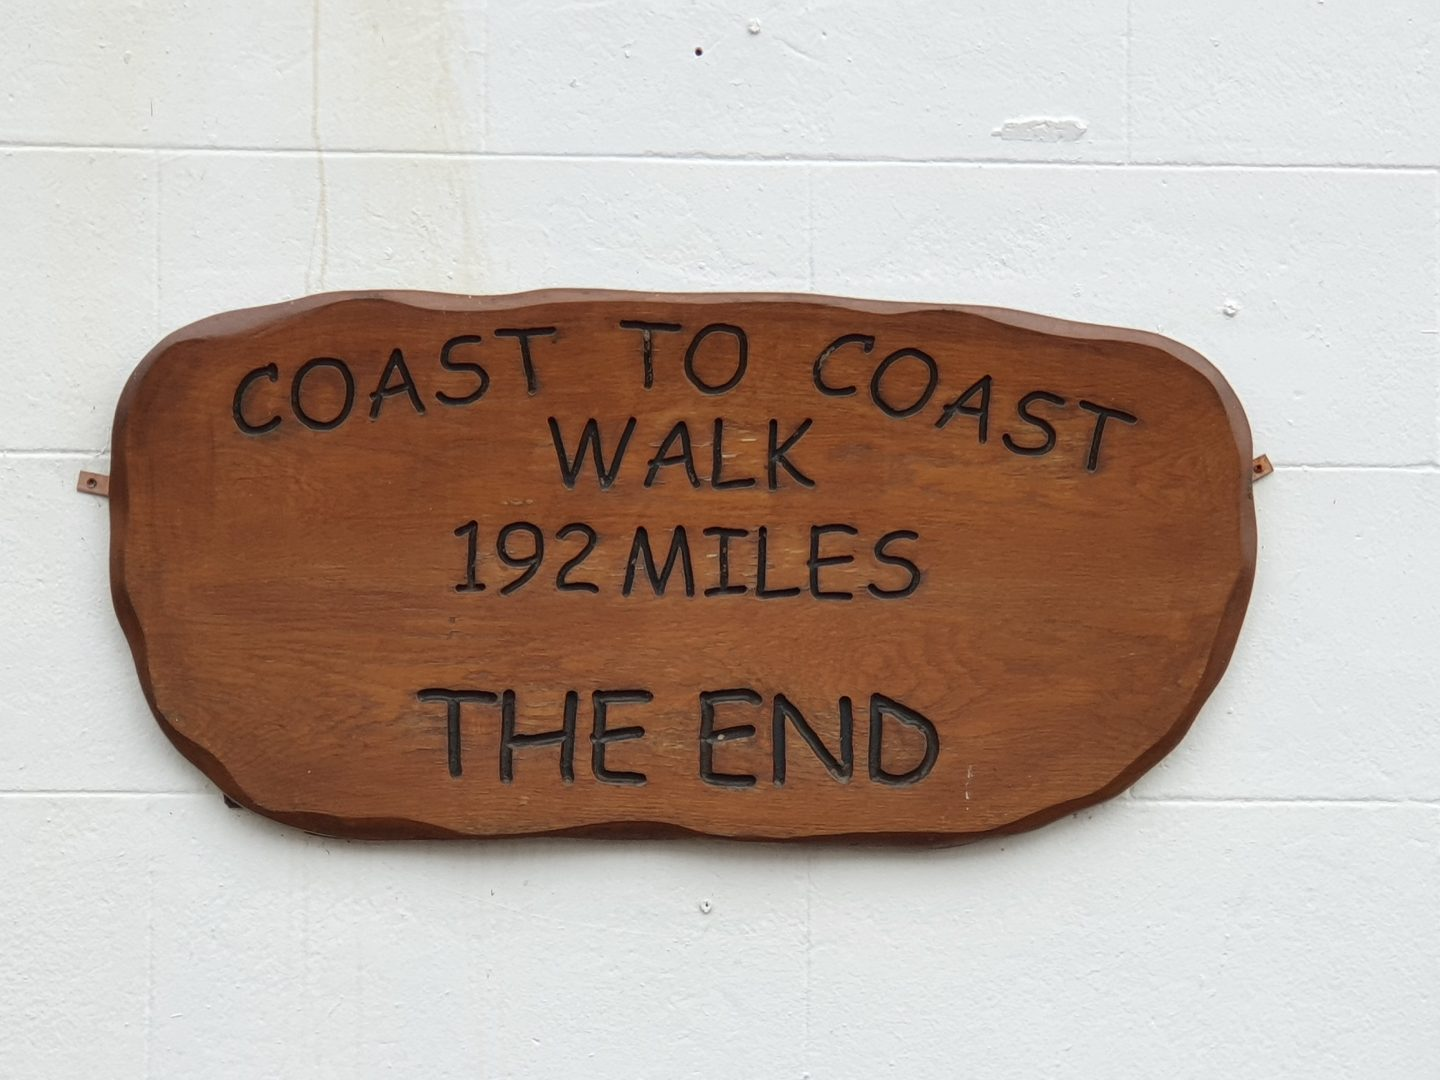 Wooden plaque depicting the end of a 192 miles trail, the Coast to Coast